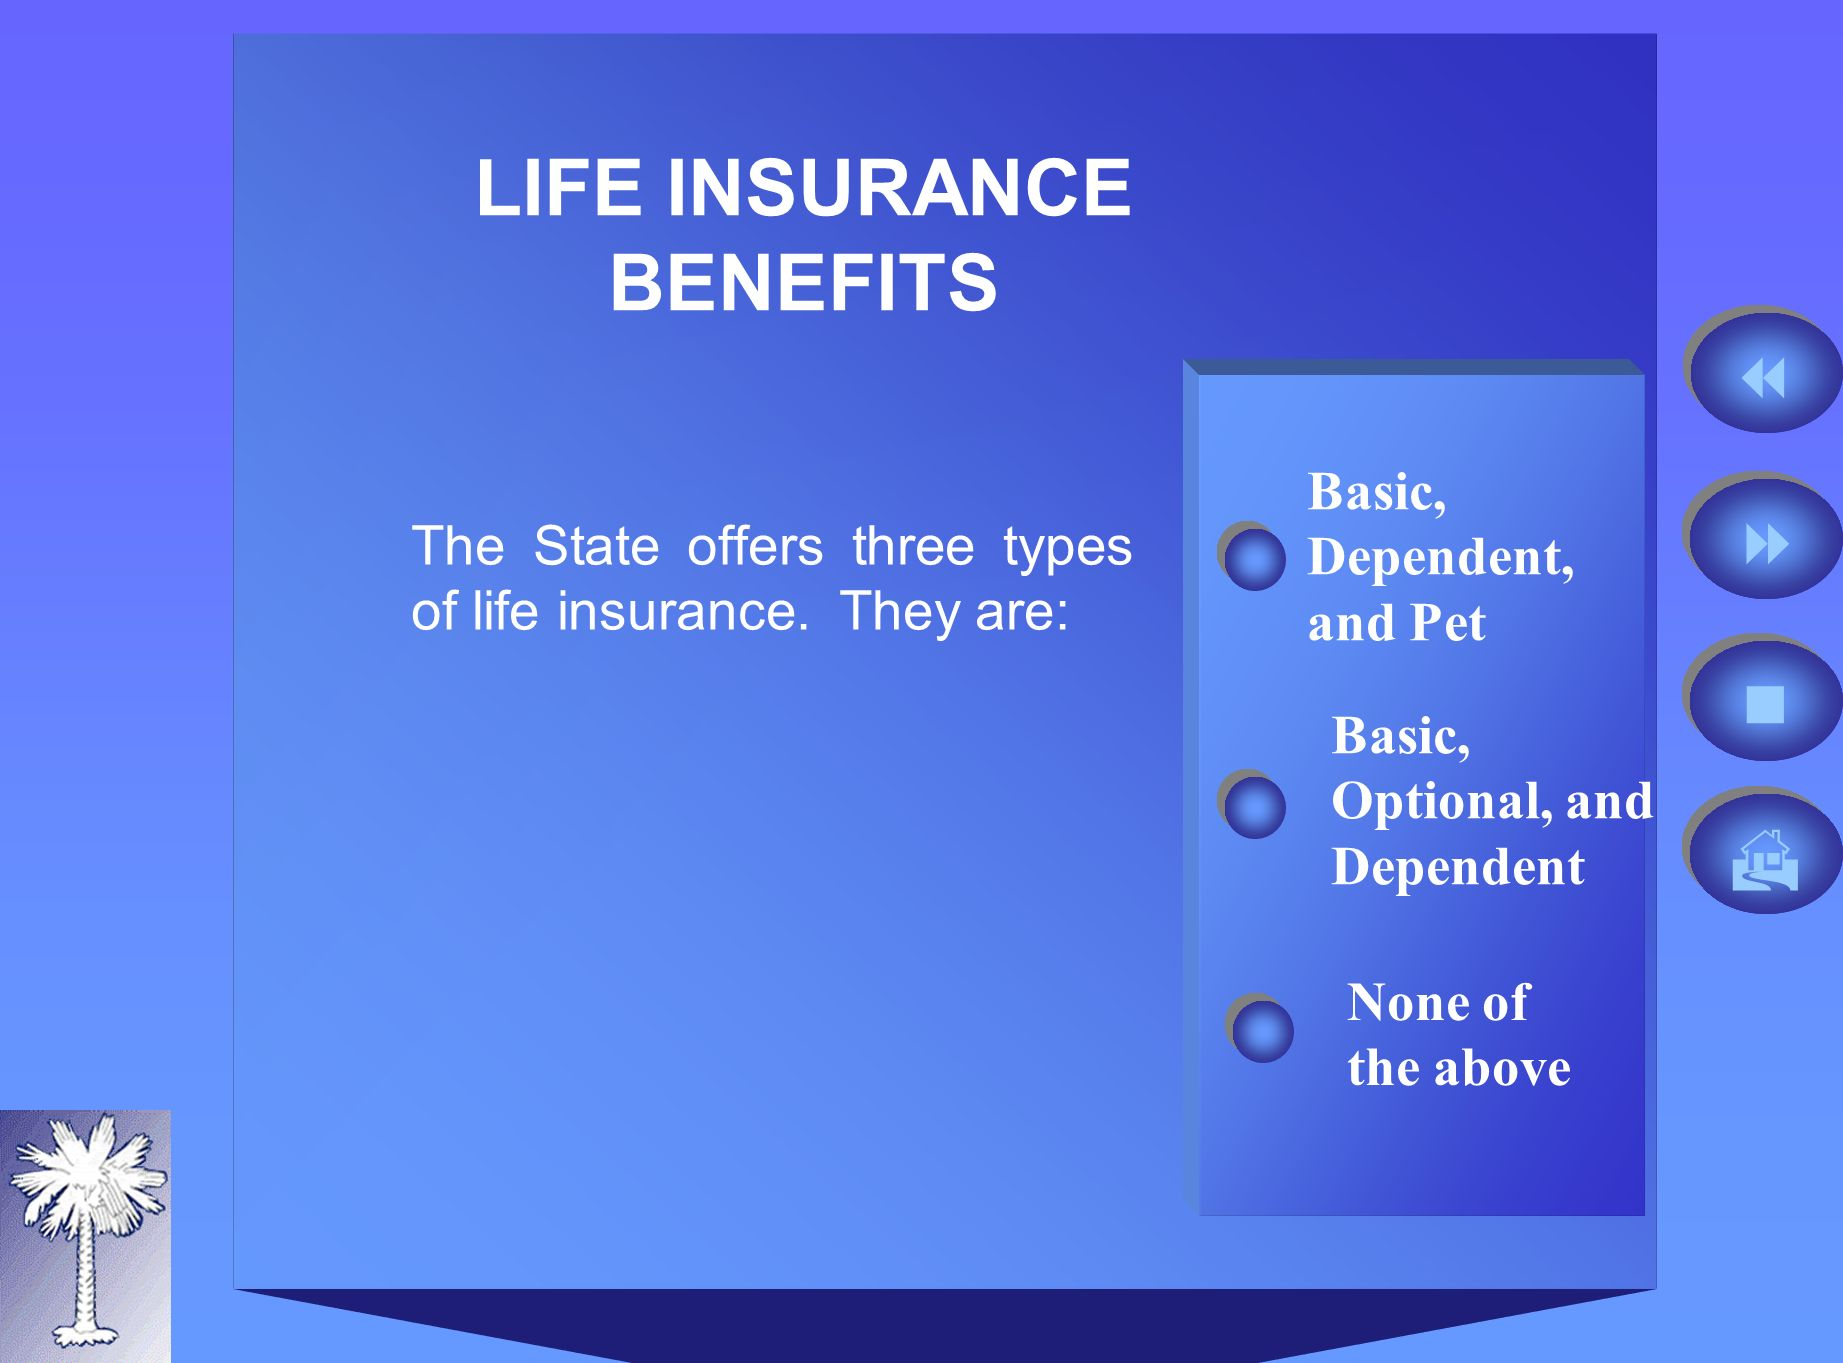 LIFE INSURANCE BENEFITS Basic, Dependent, and Pet The State offers three types of life insurance.